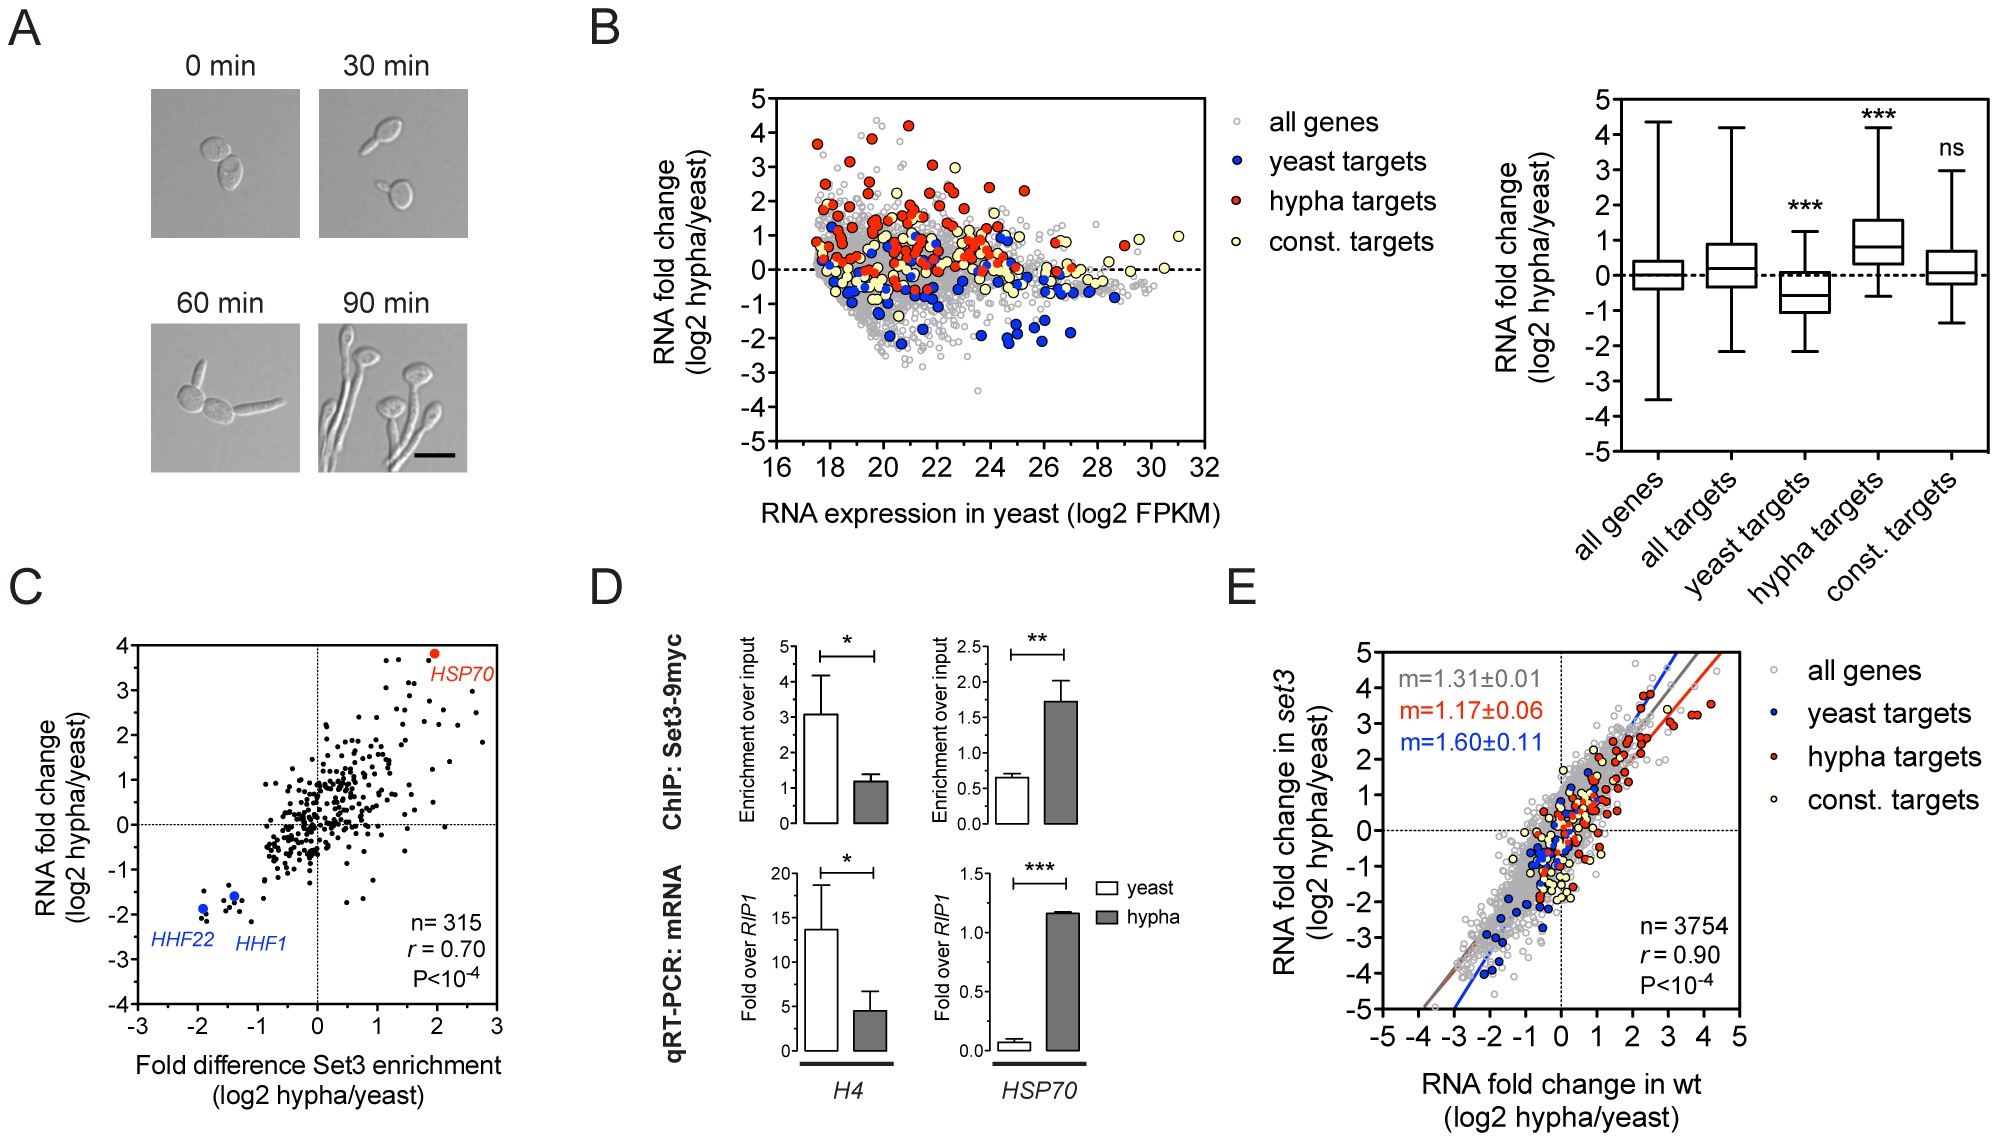 Set3C recruitment predicts induction and depletion predicts repression.